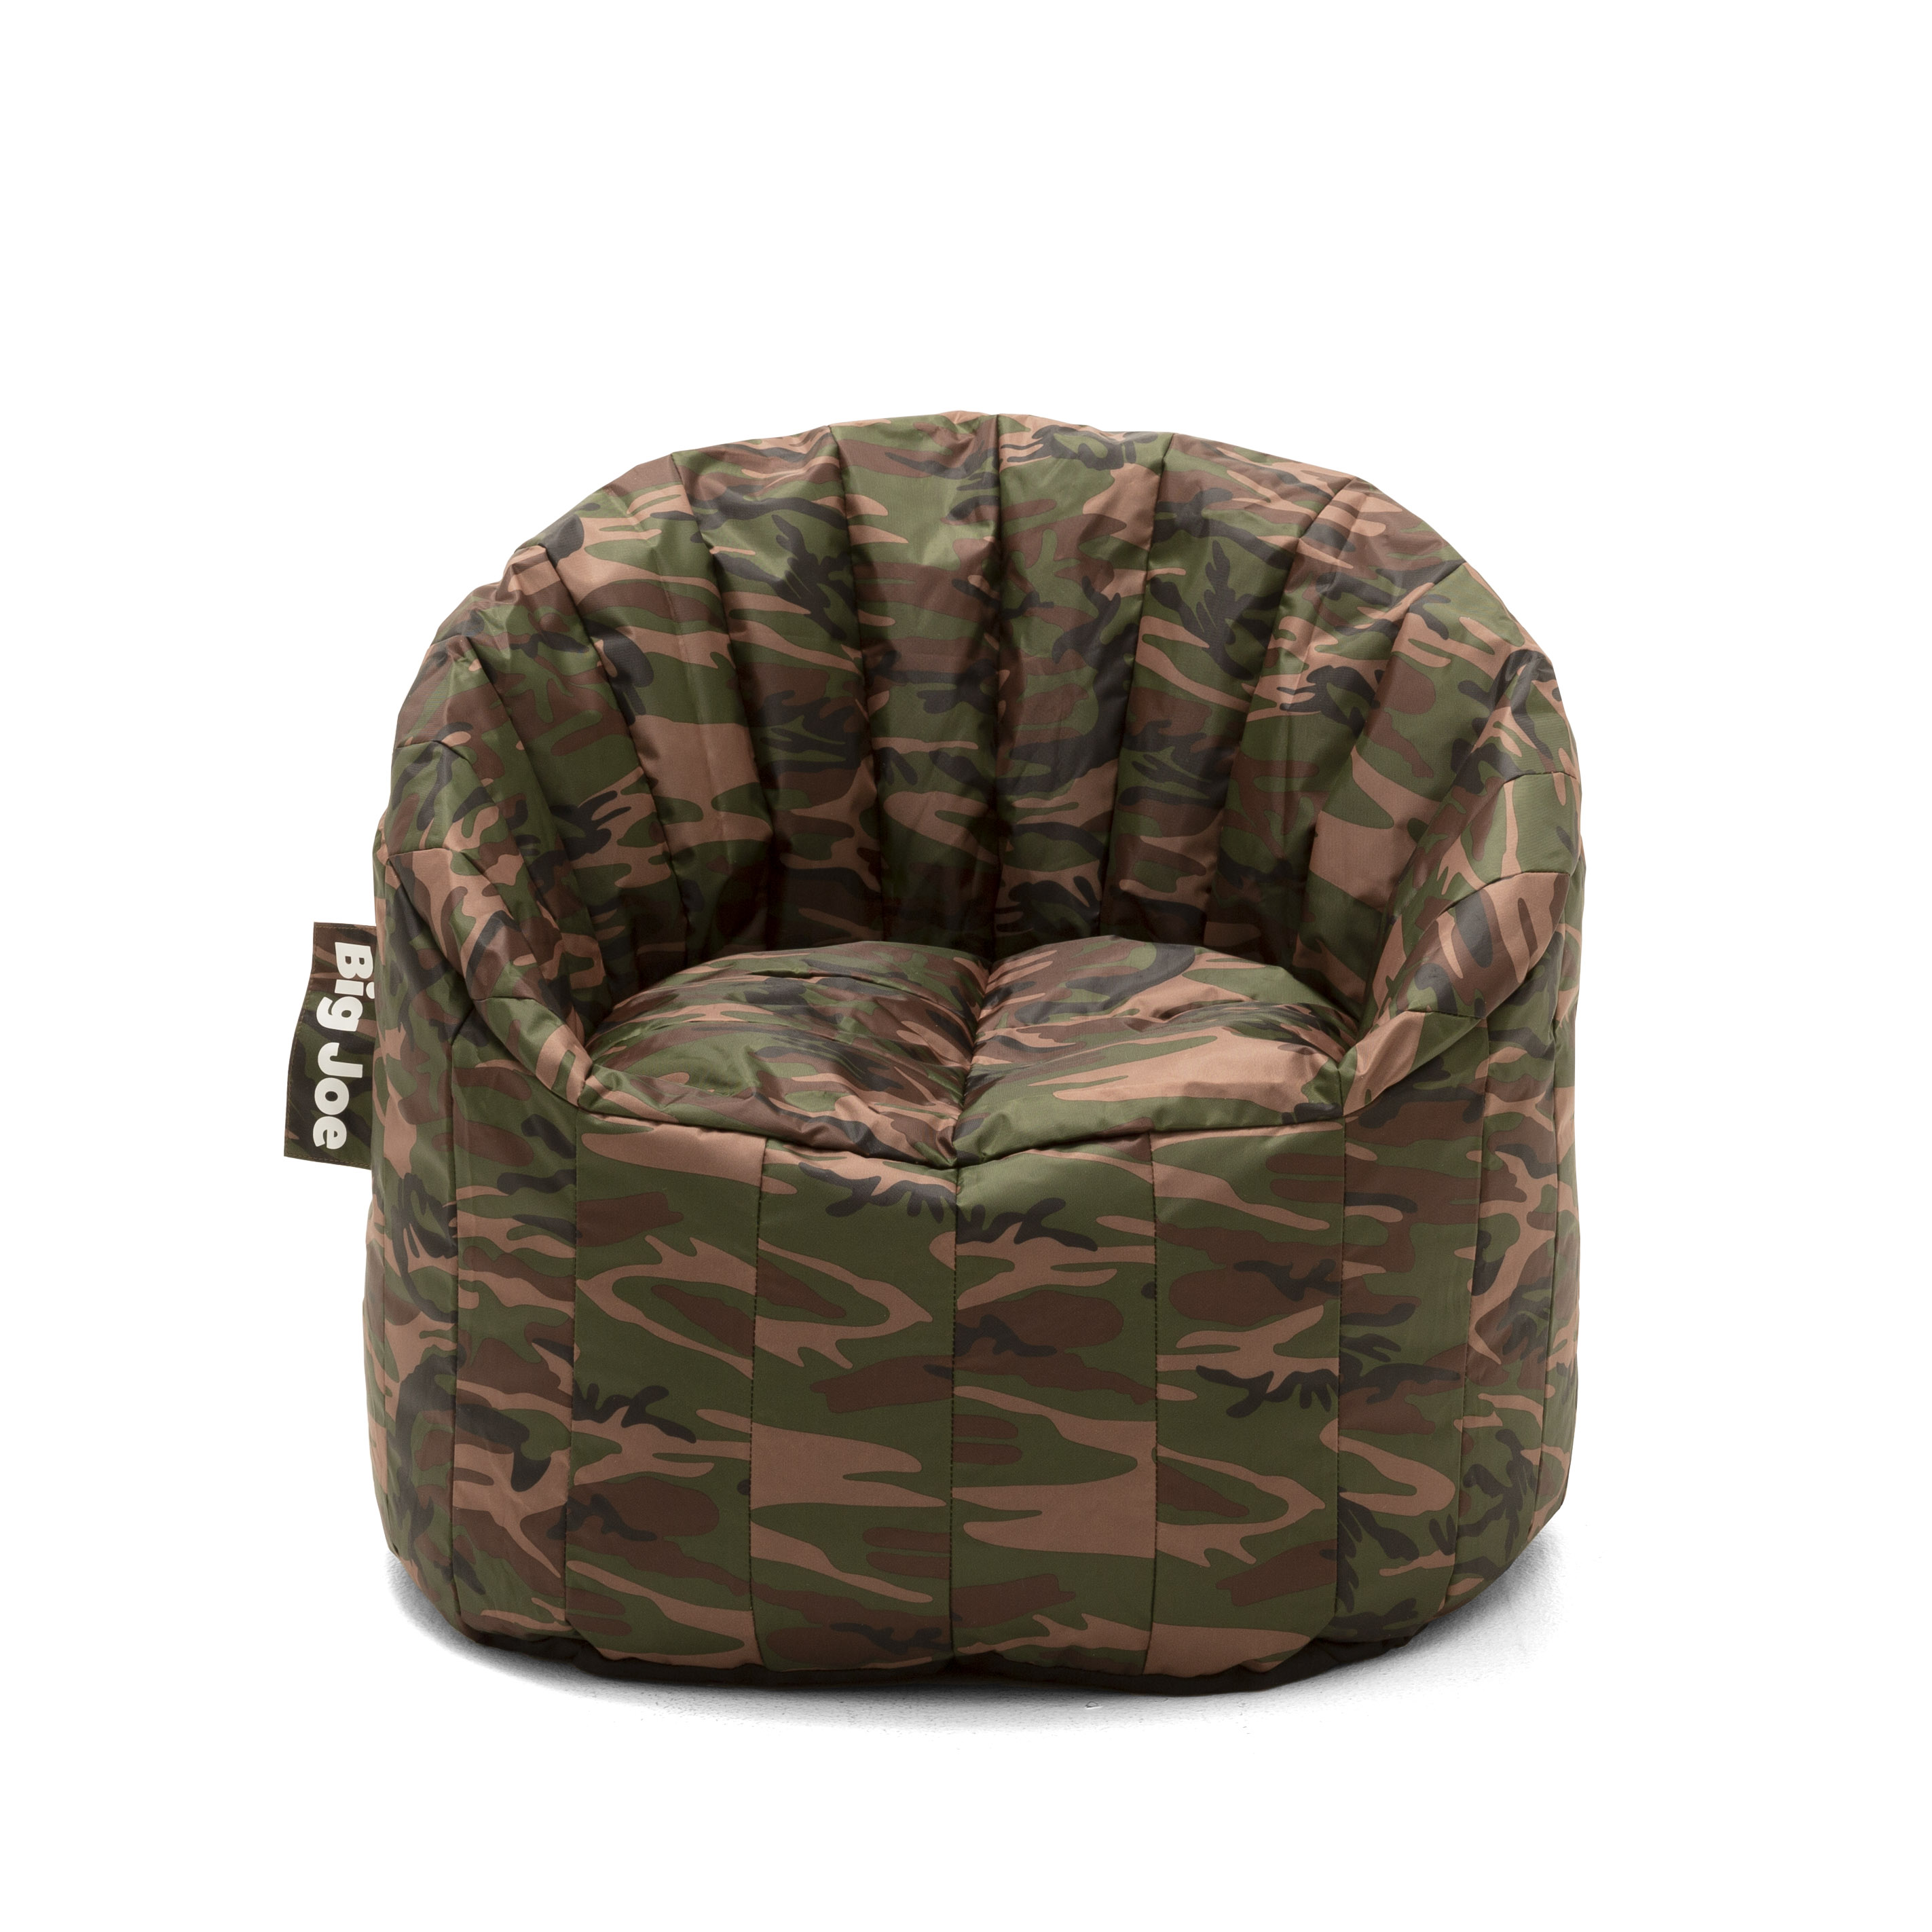 Astounding Big Joe Lumin Bean Bag Chair Available In Multiple Colors Squirreltailoven Fun Painted Chair Ideas Images Squirreltailovenorg